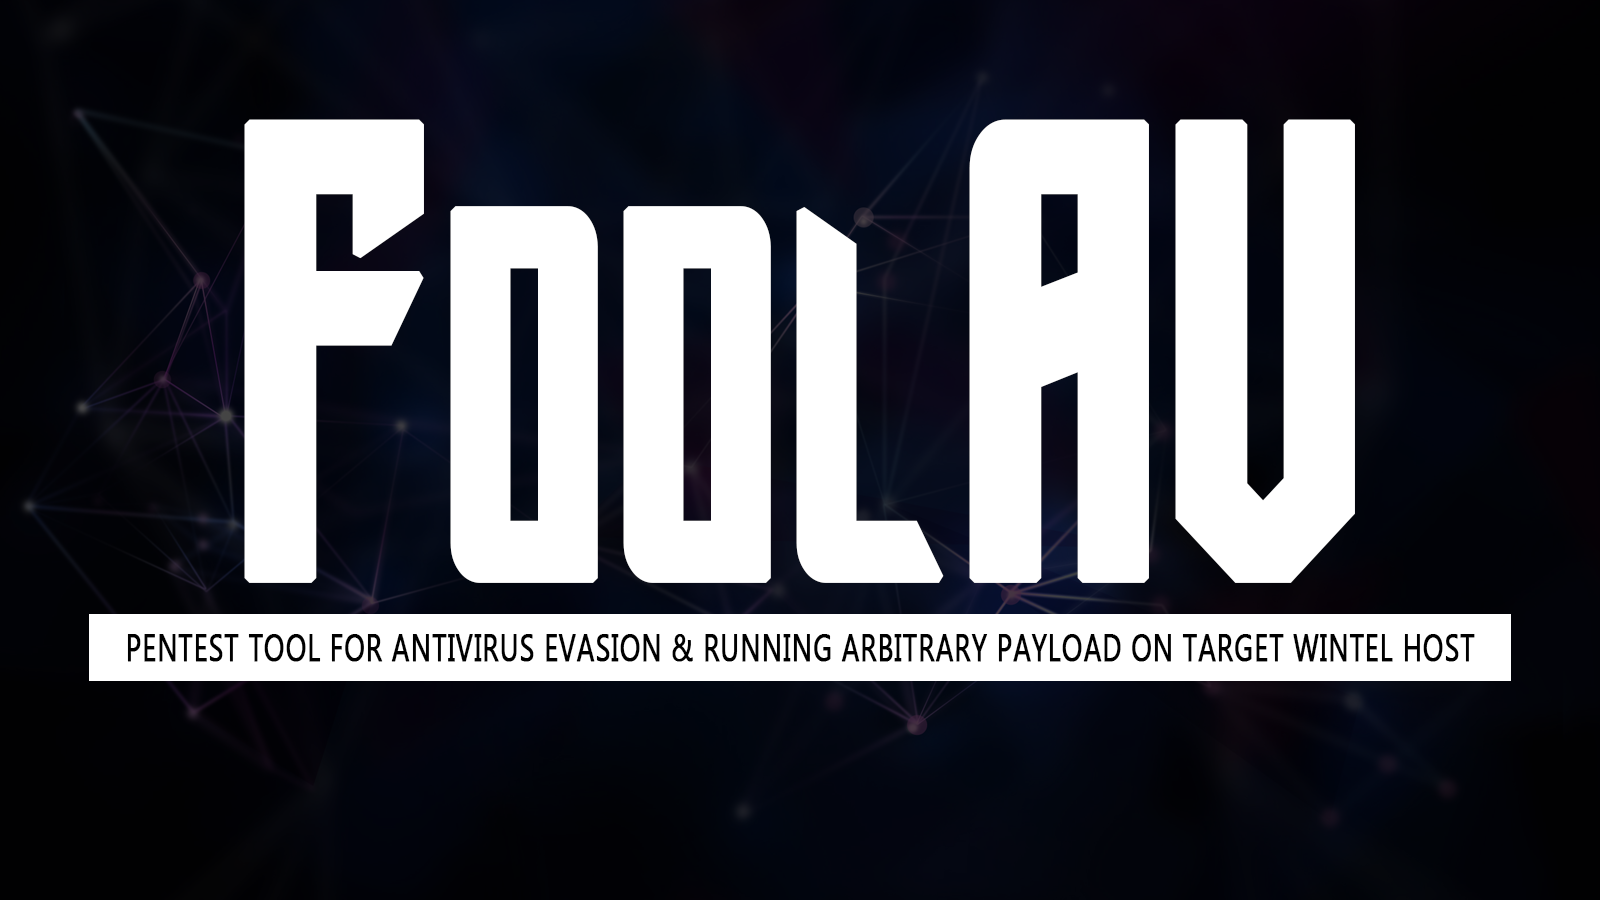 FoolAV - Pentest Tool for Antivirus Evasion & Running Arbitrary Payload on Target Wintel Host